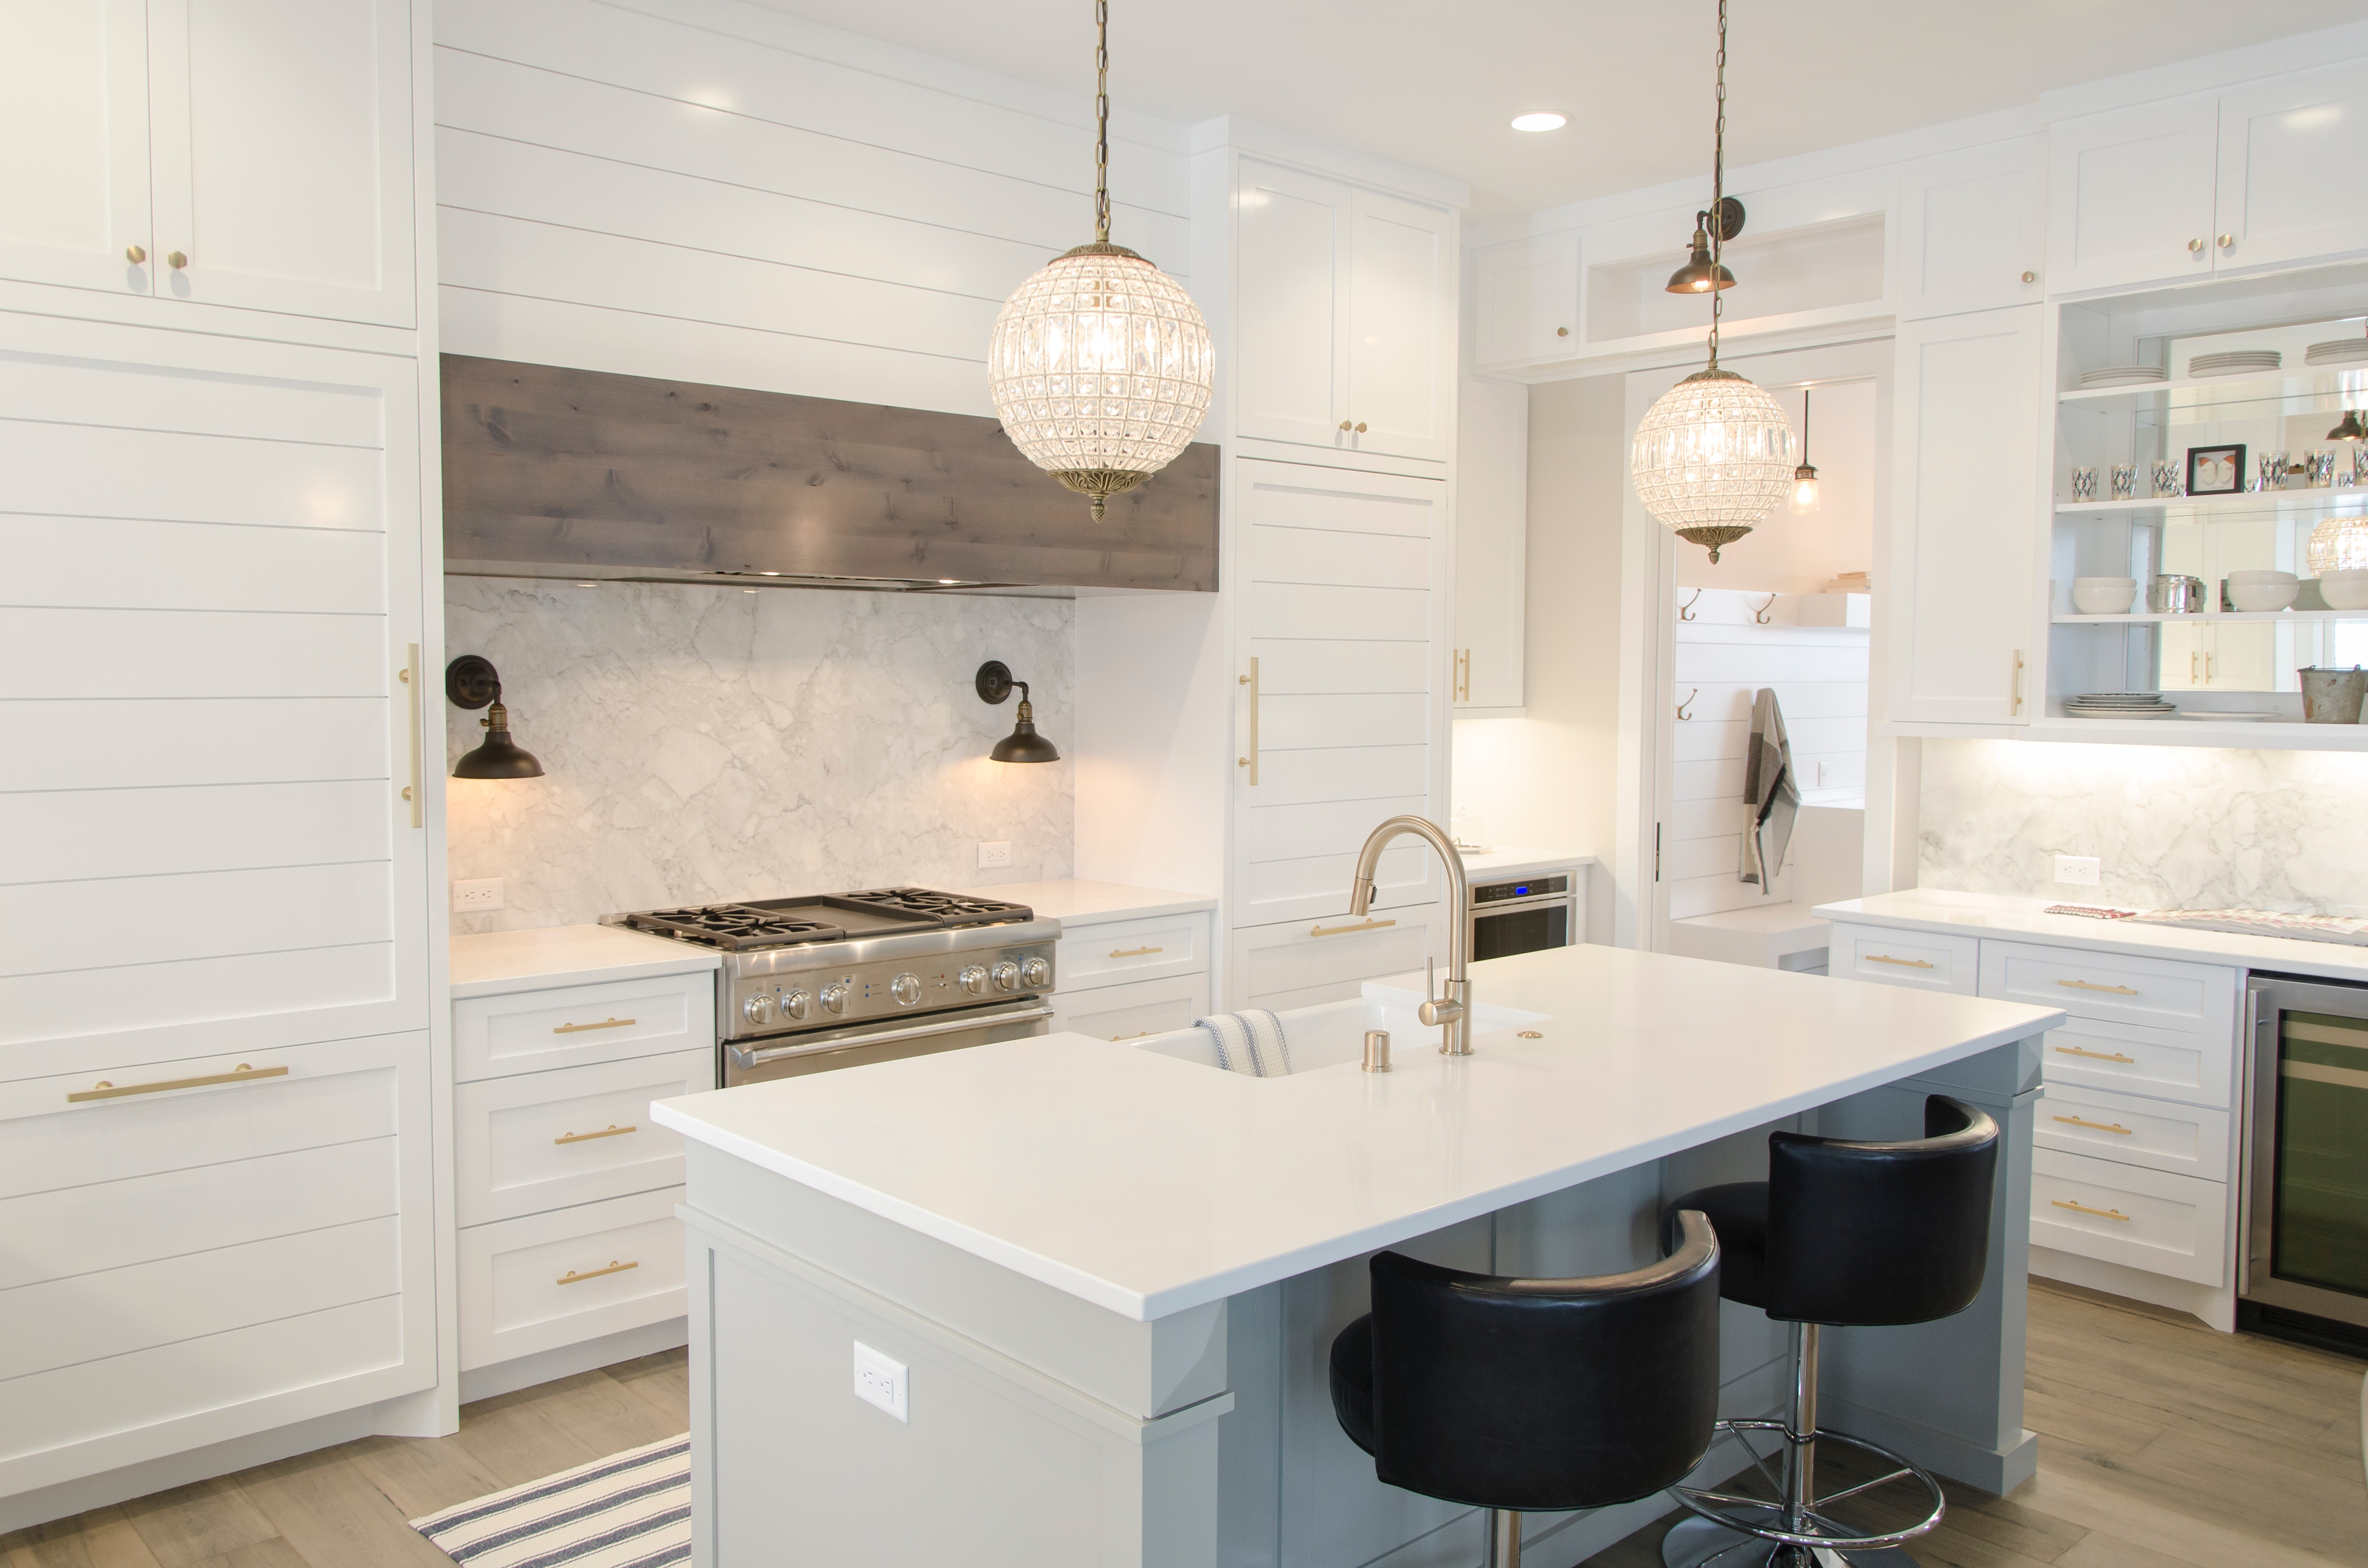 kitchen reno custom built cabinets splurges for your eieihome an essential part of planning renovation budget is making room since one the most important